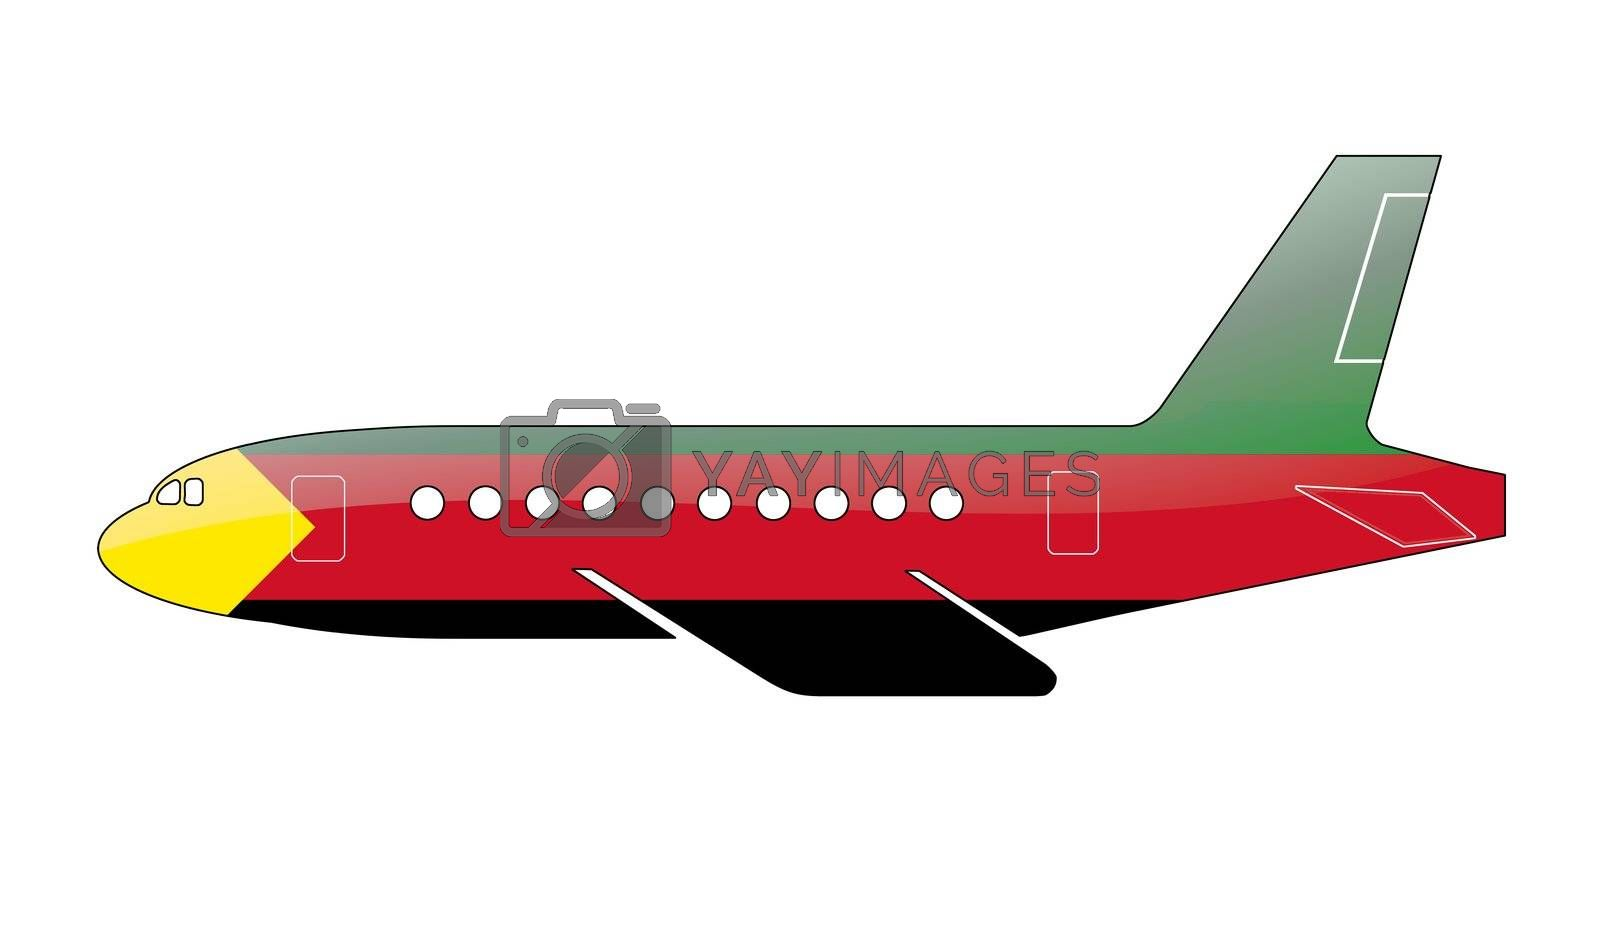 The Azavad flag painted on the silhouette of a aircraft. glossy illustration